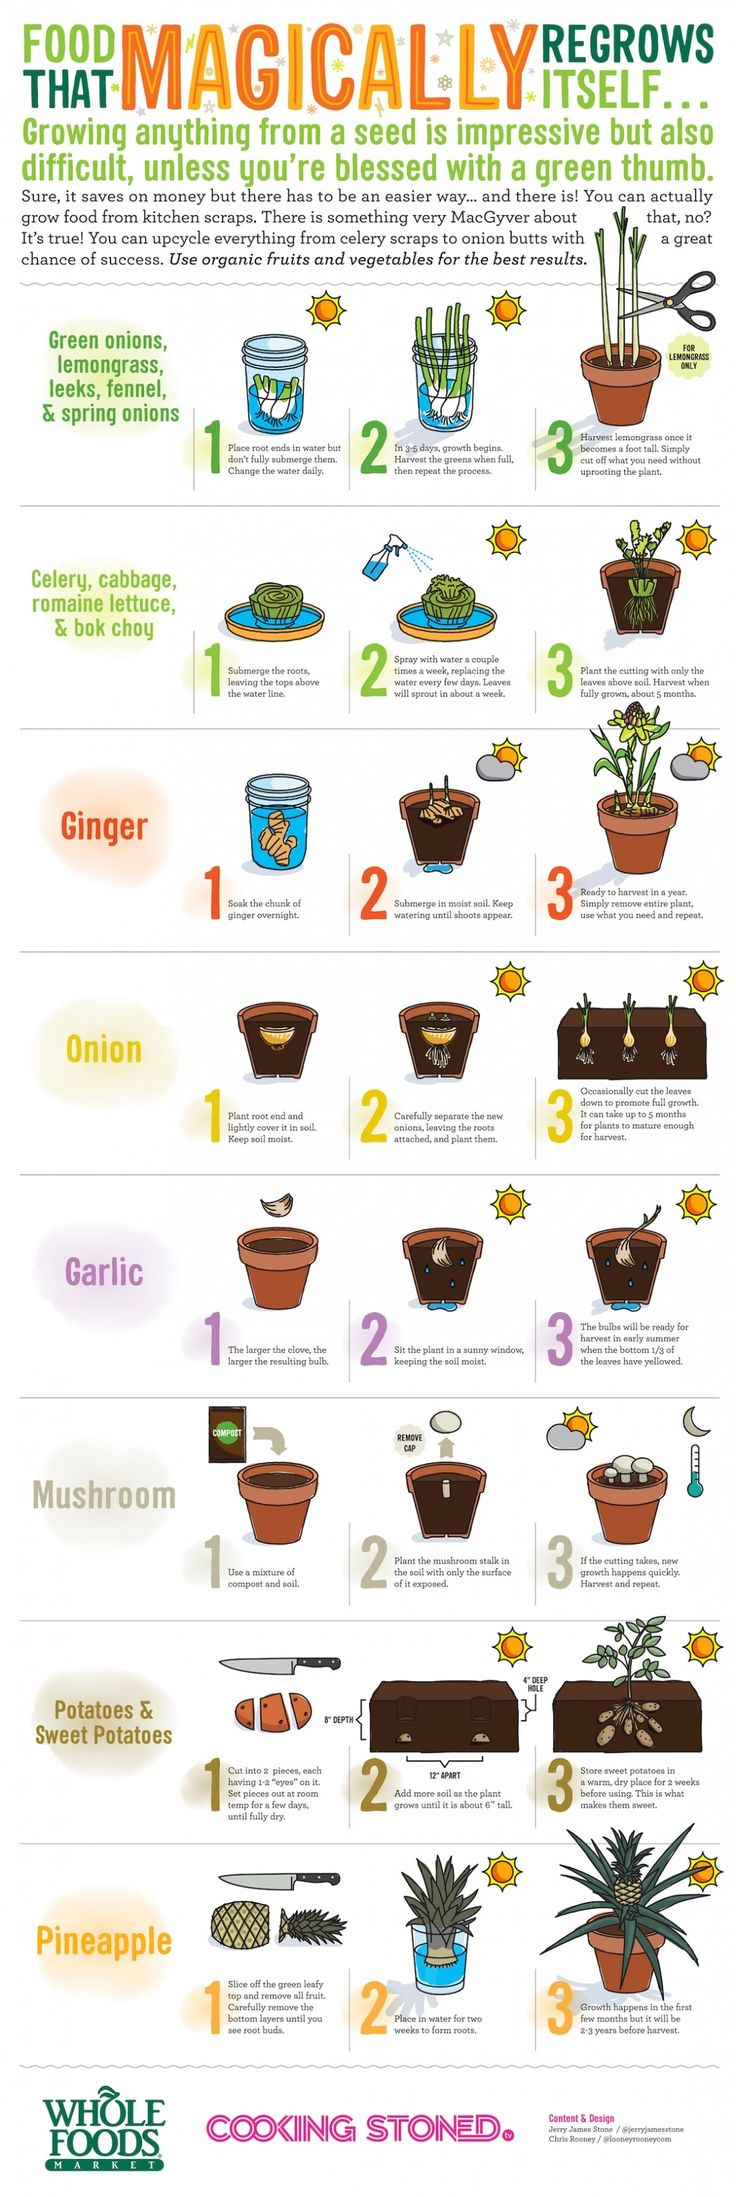 Food that regrows from smallest leftovers